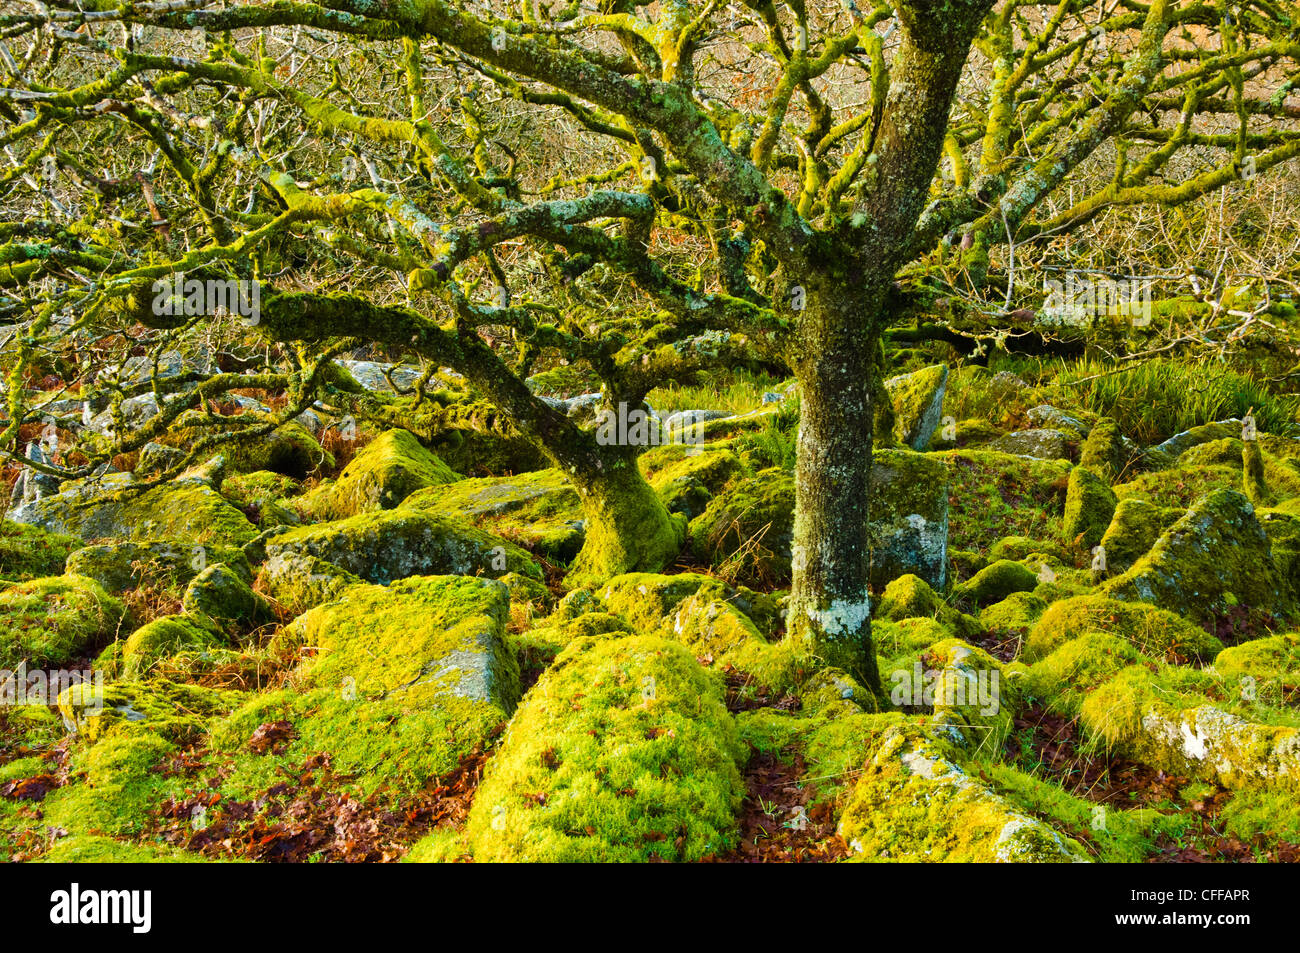 Wistman's Wood a small remnant of ancient woodland on Dartmoor Devon - Stock Image